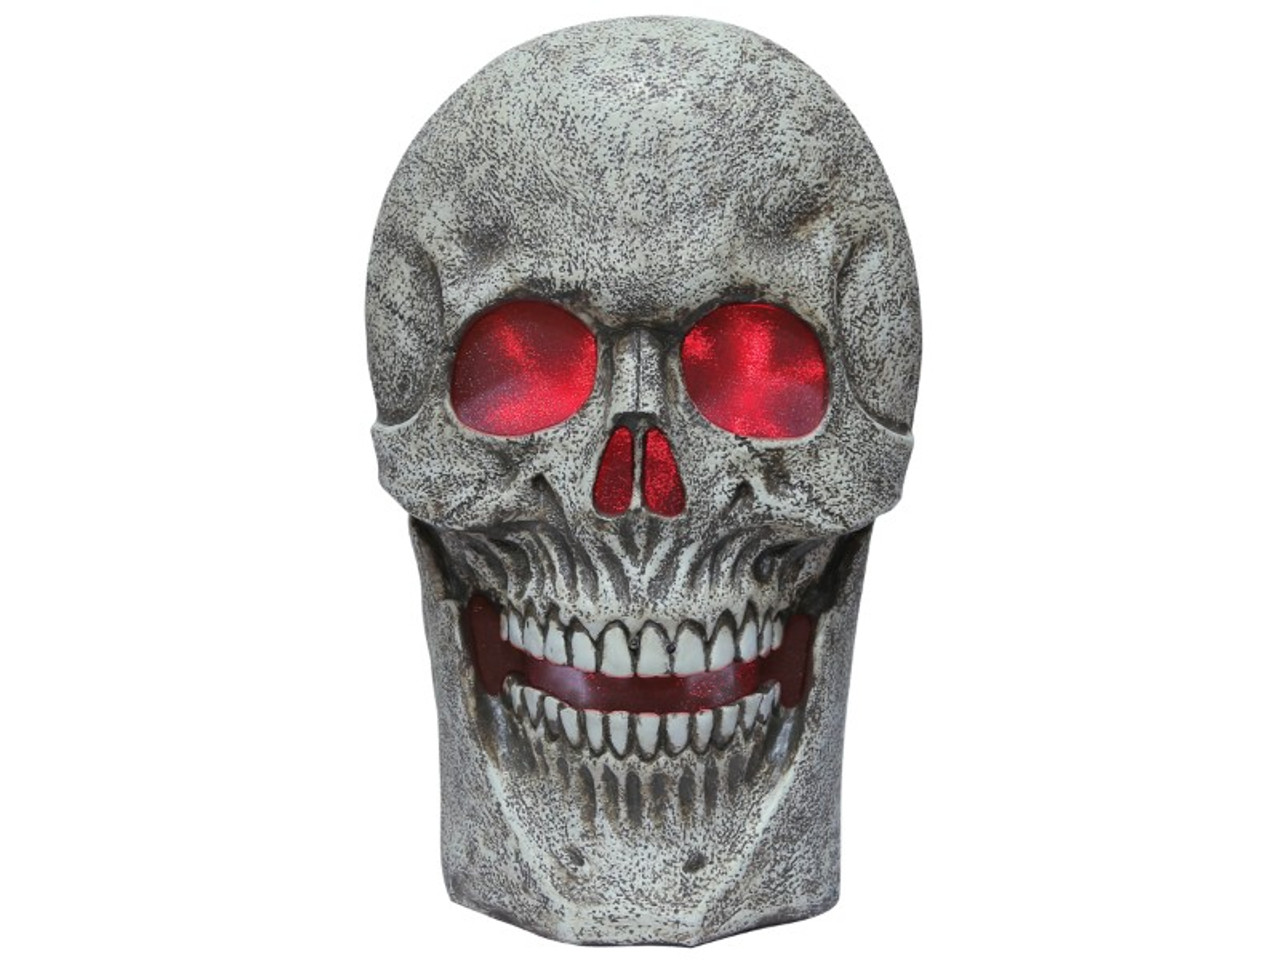 youll be giving your halloween decorations a morbid touch by incorporating